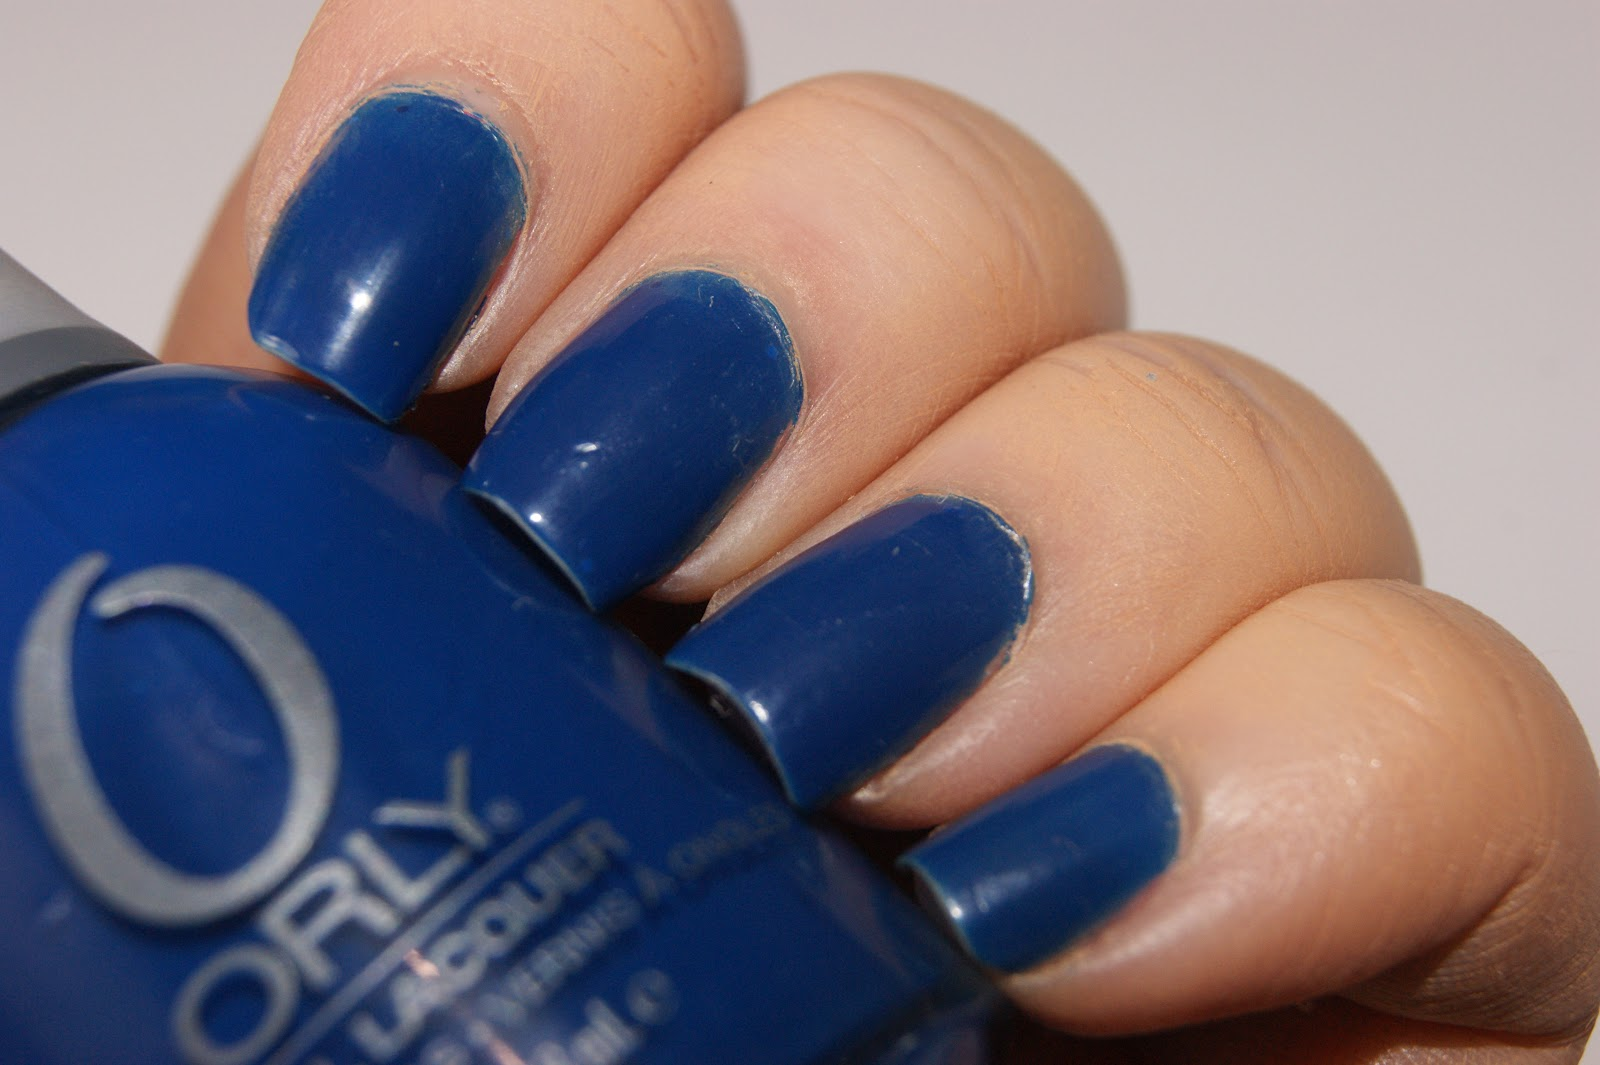 Orly Shockwave Nail Lacquer - Review | The Sunday Girl